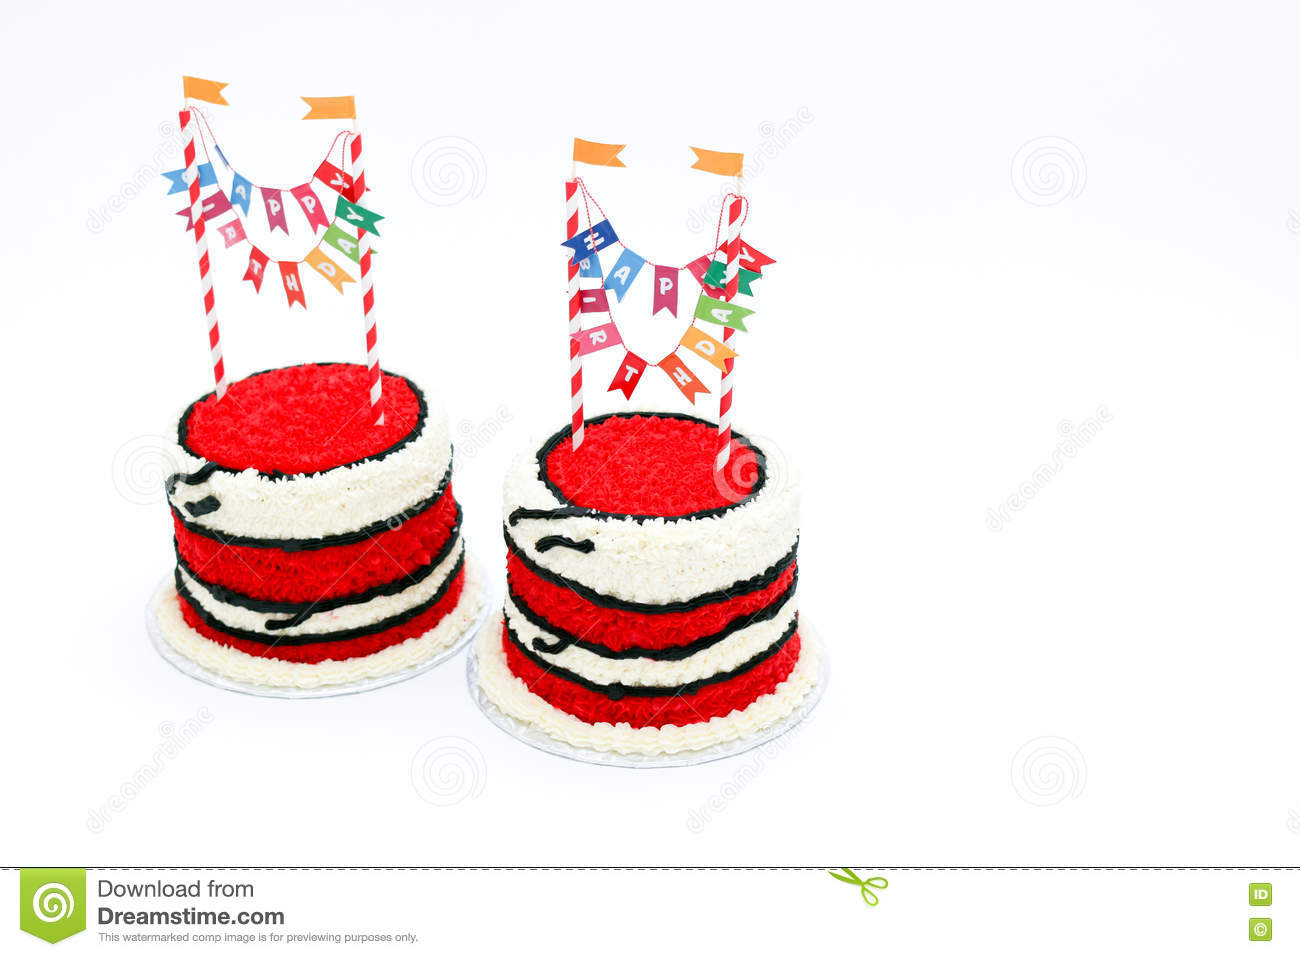 Two Red Birthday Cakes With Banners